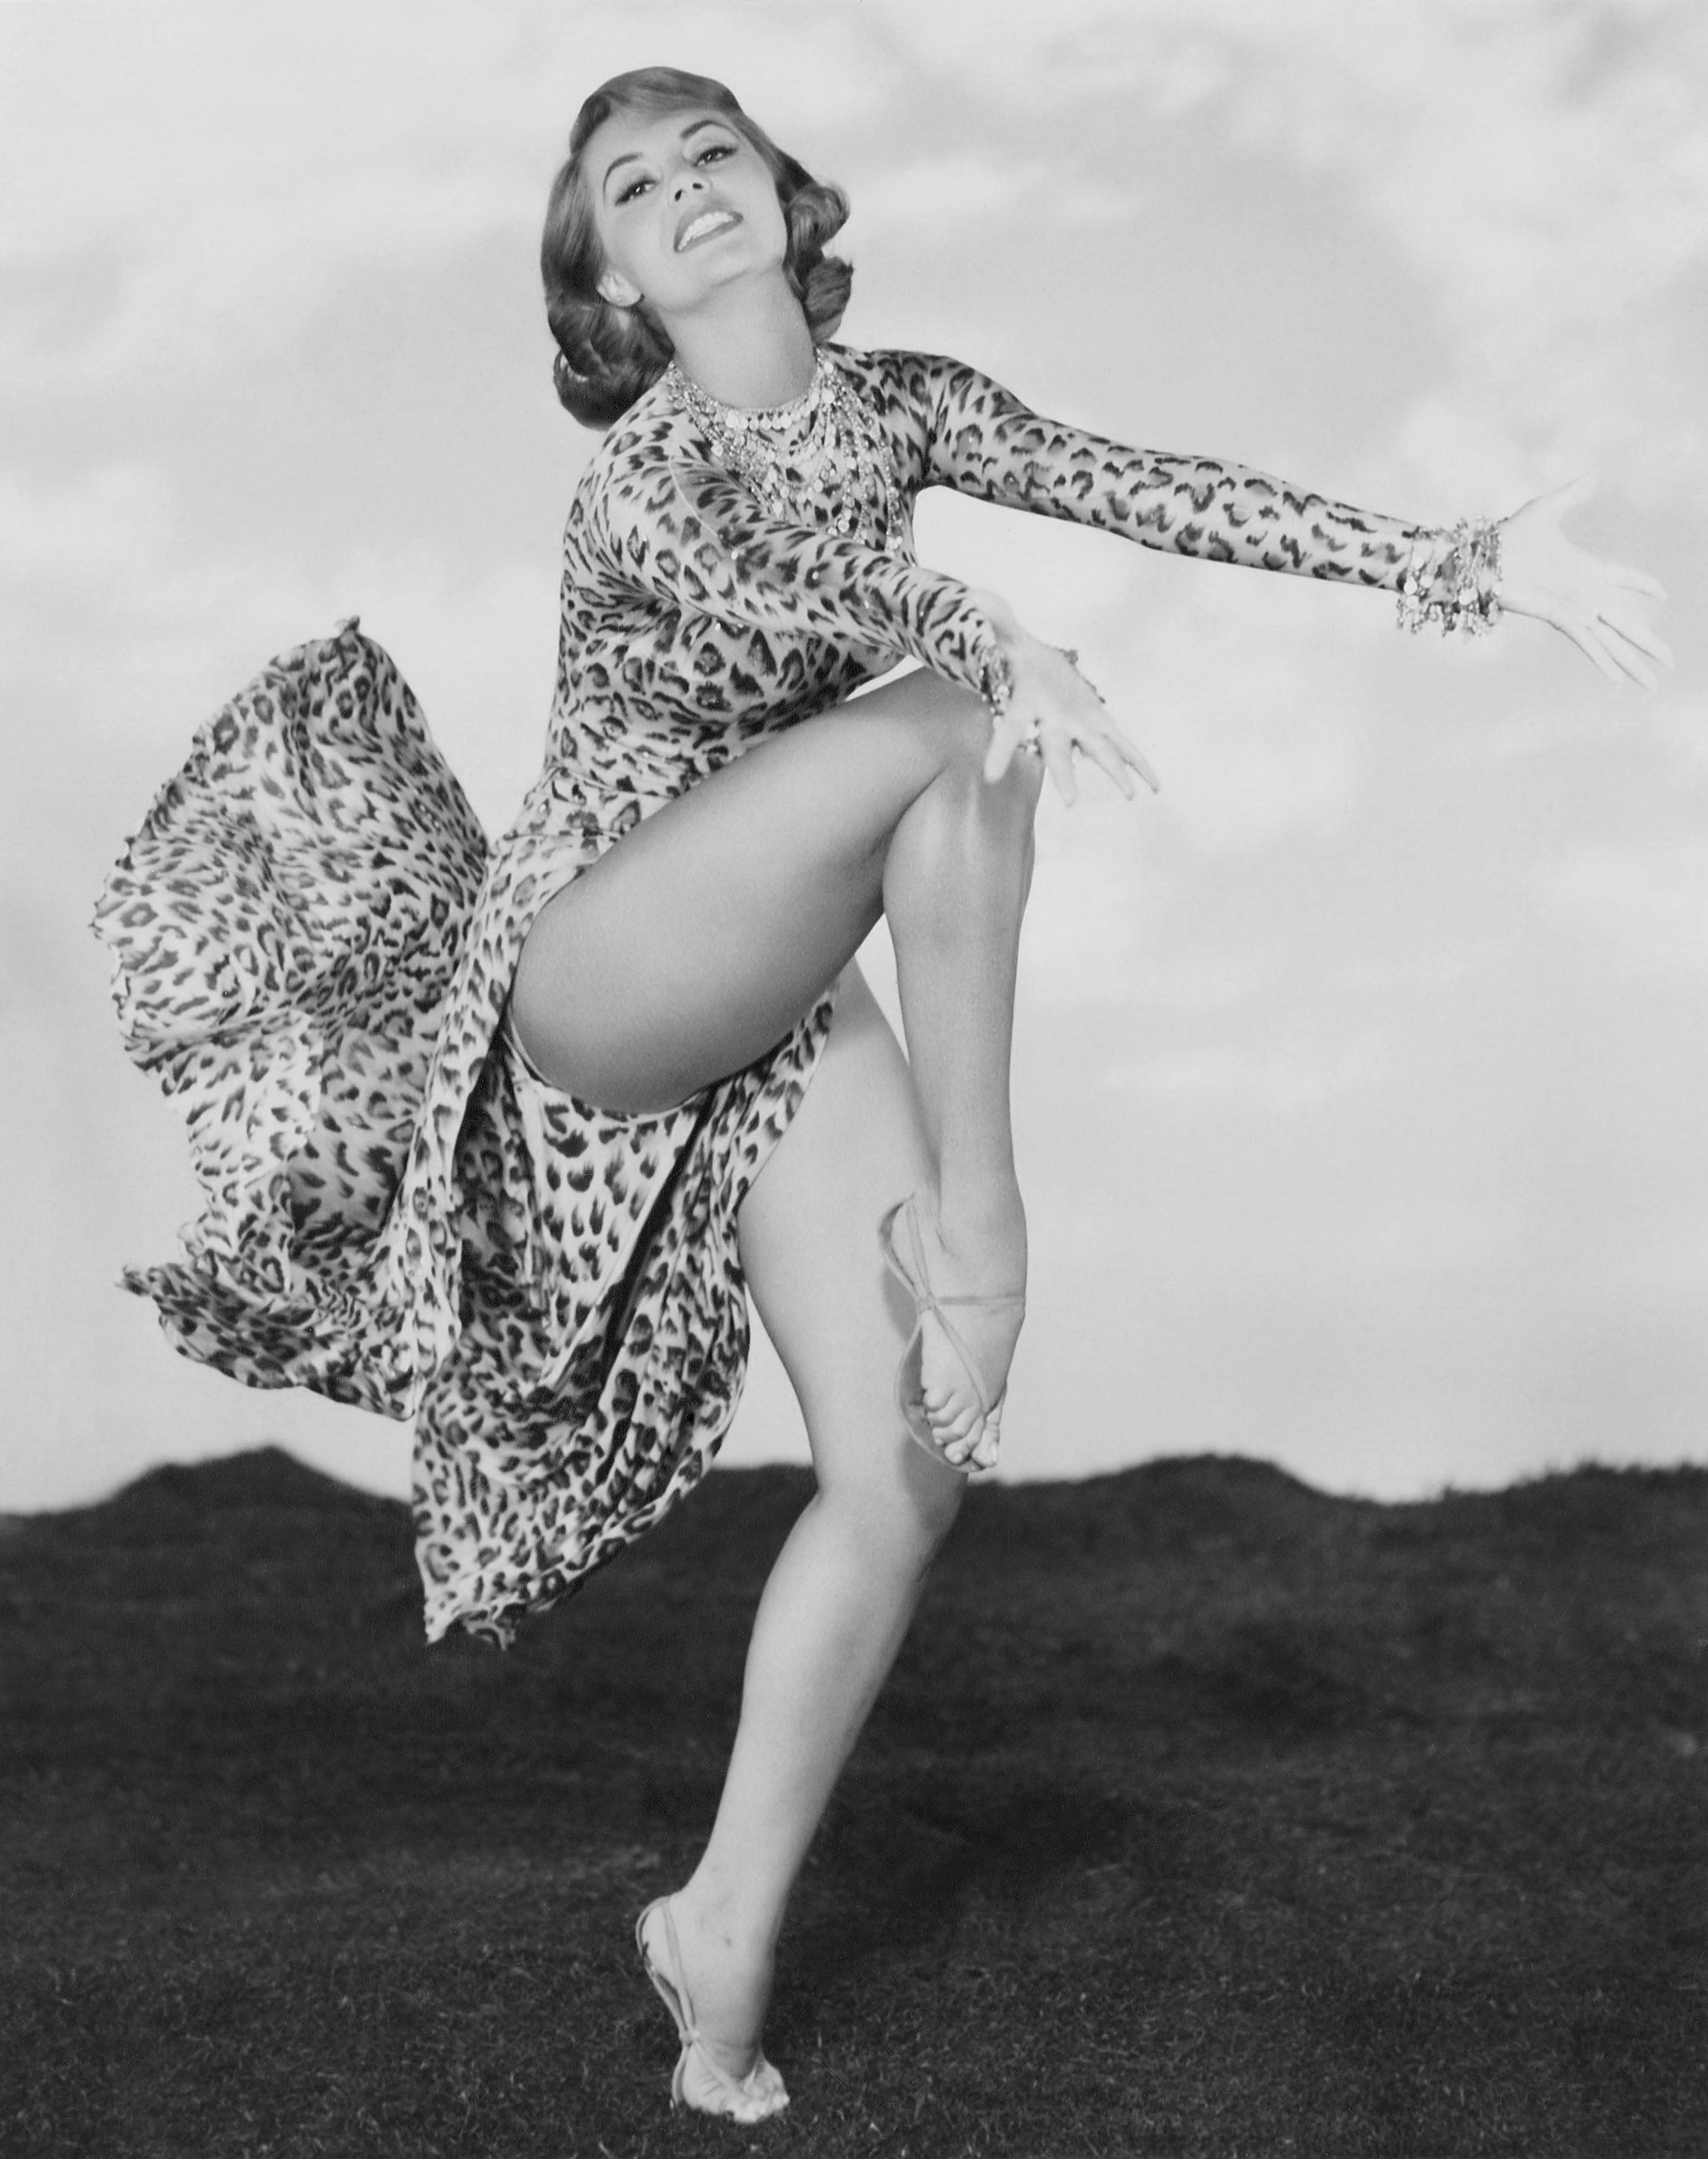 cyd charisse oldcyd charisse height, cyd charisse height weight, cyd charisse now, cyd charisse and fred astaire, cyd charisse gene kelly, cyd charisse ballerina, cyd charisse funeral, cyd charisse las vegas, cyd charisse films, cyd charisse photos, cyd charisse old, cyd charisse birthday, cyd charisse dancing